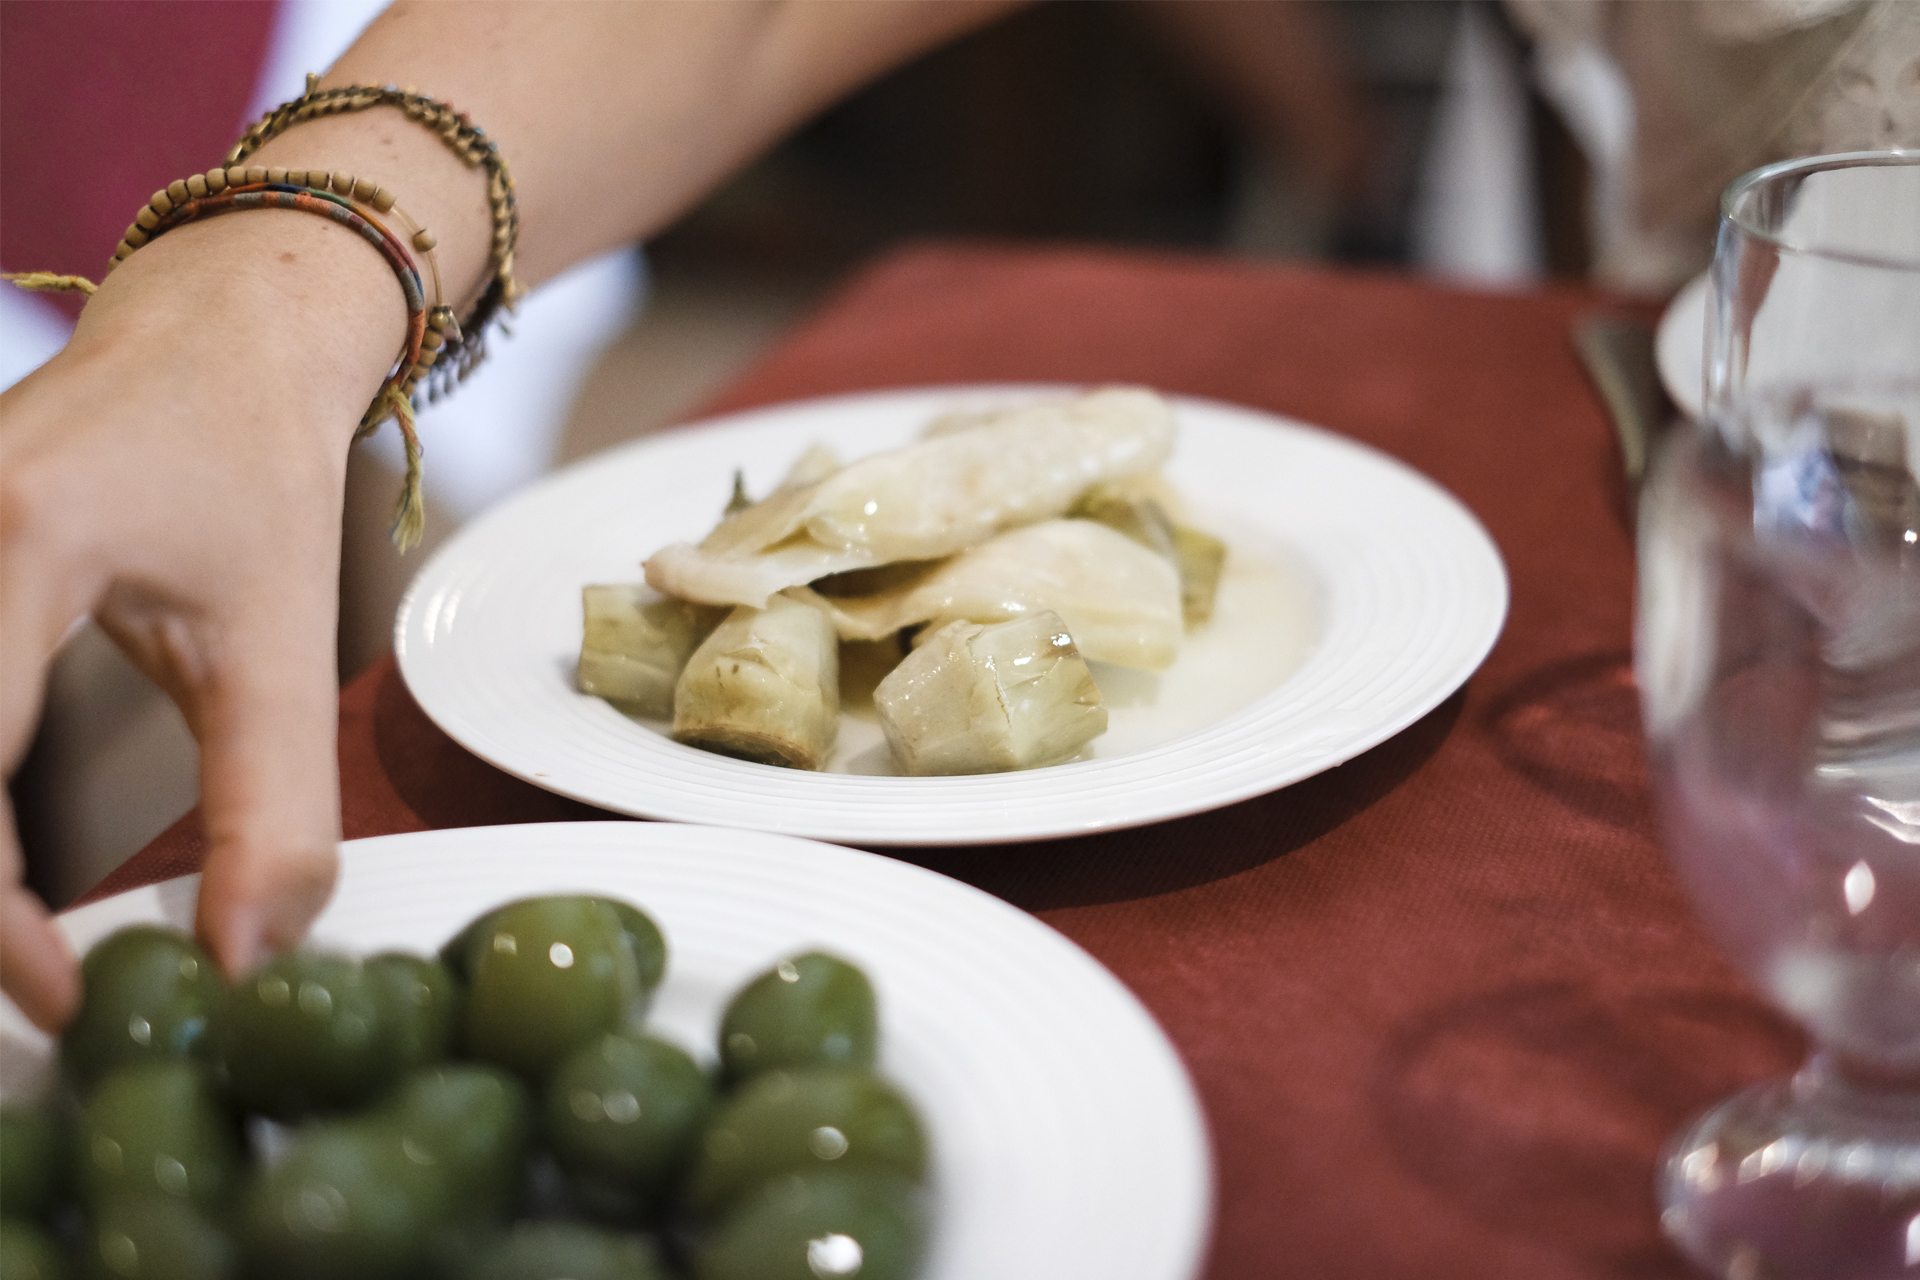 A glimpse of Puglia olives and artichokes